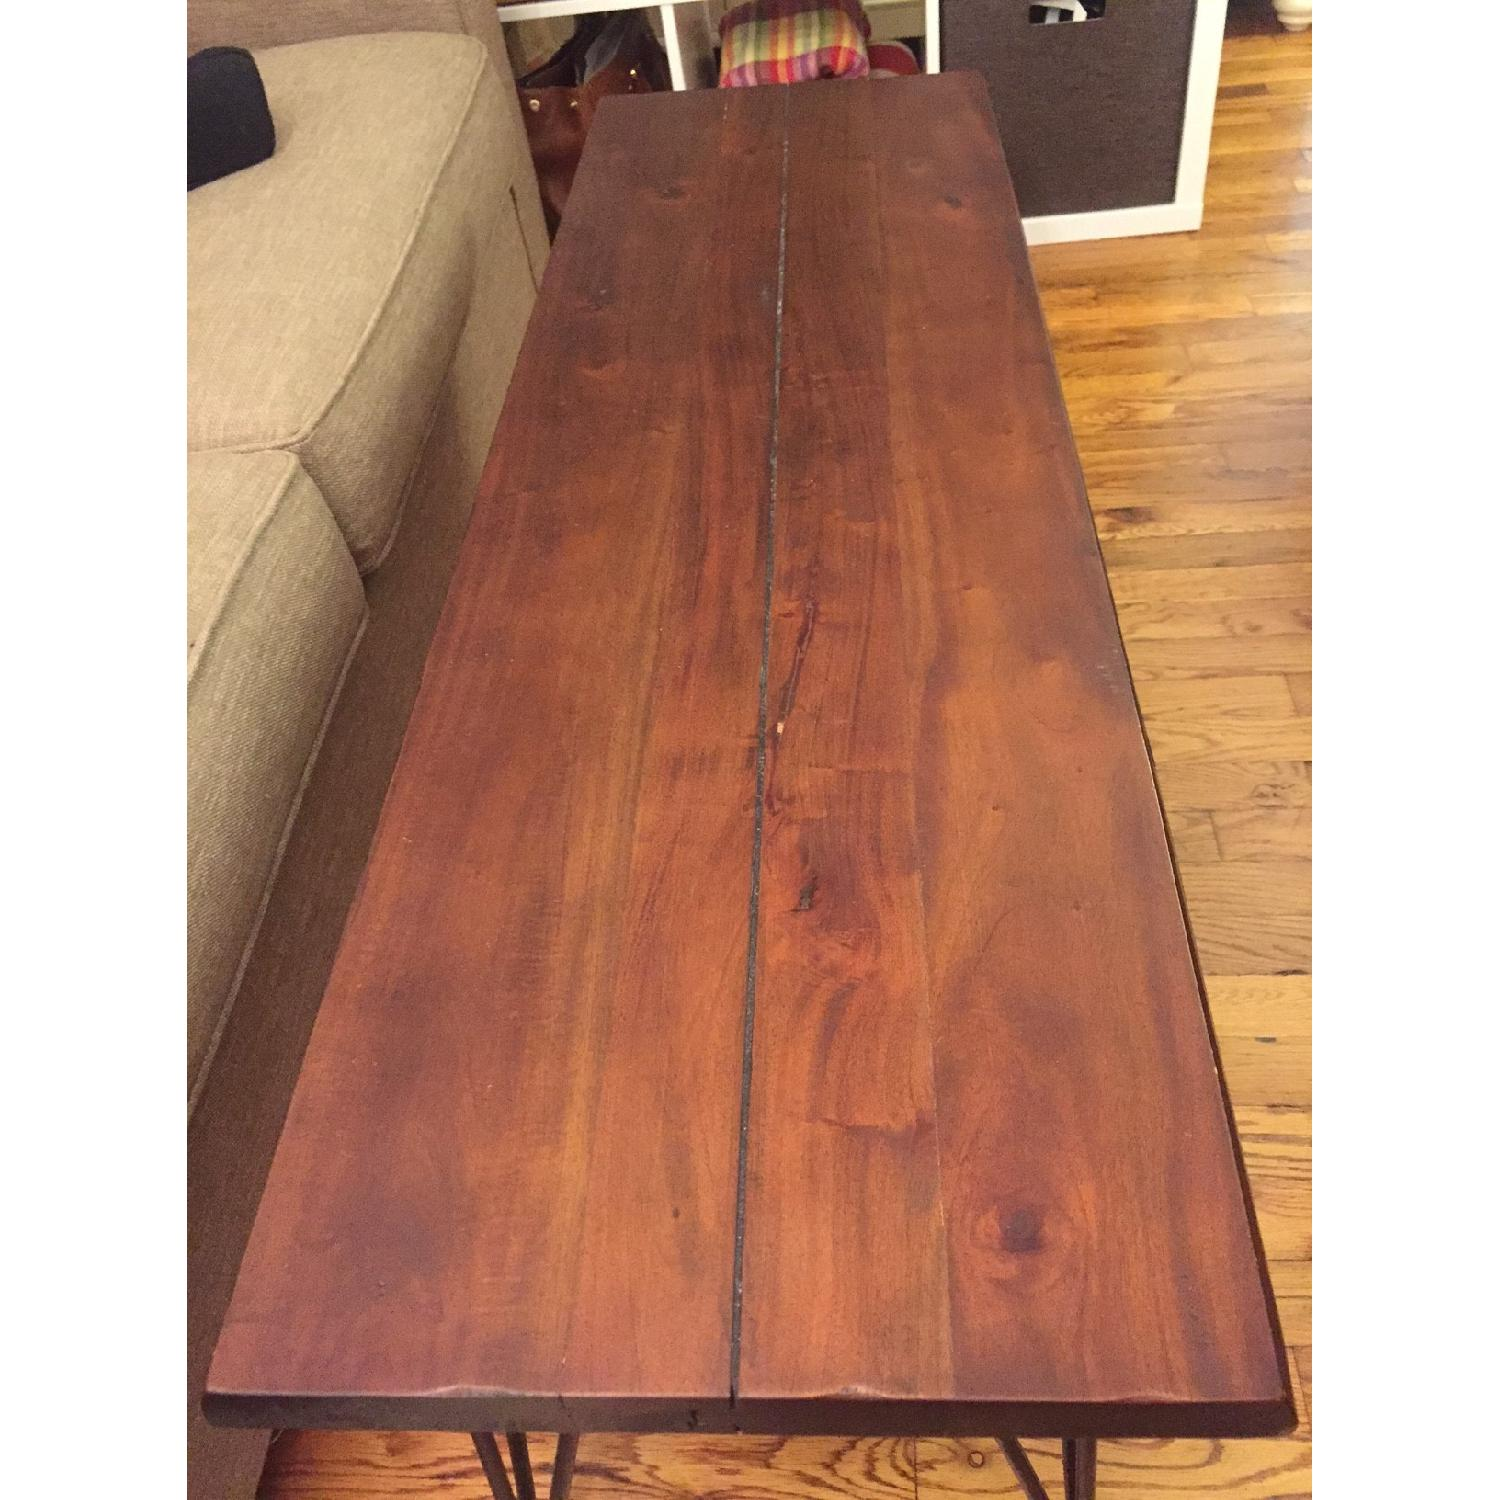 Natural Wood Table/Bench w/ Hairpin Legs - image-1